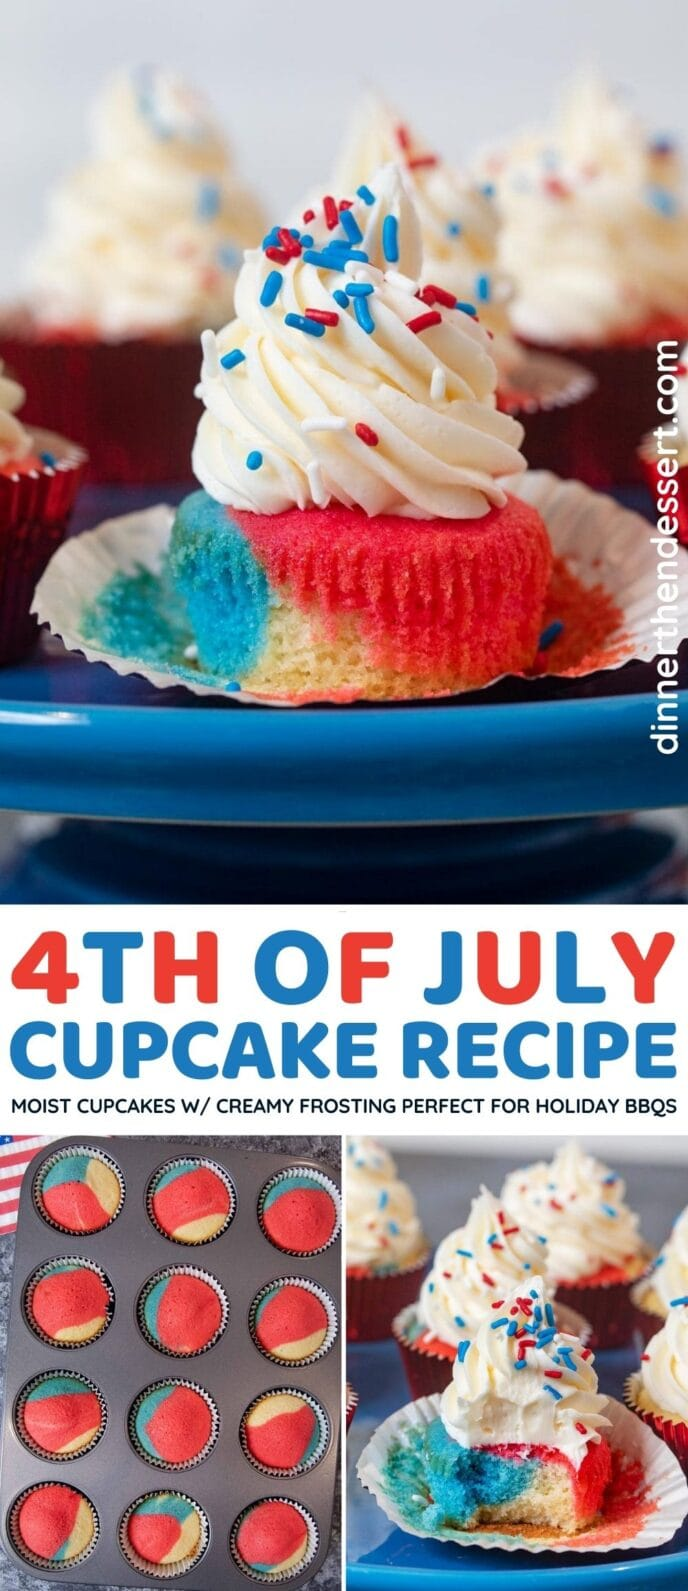 4th of July Cupcakes collage